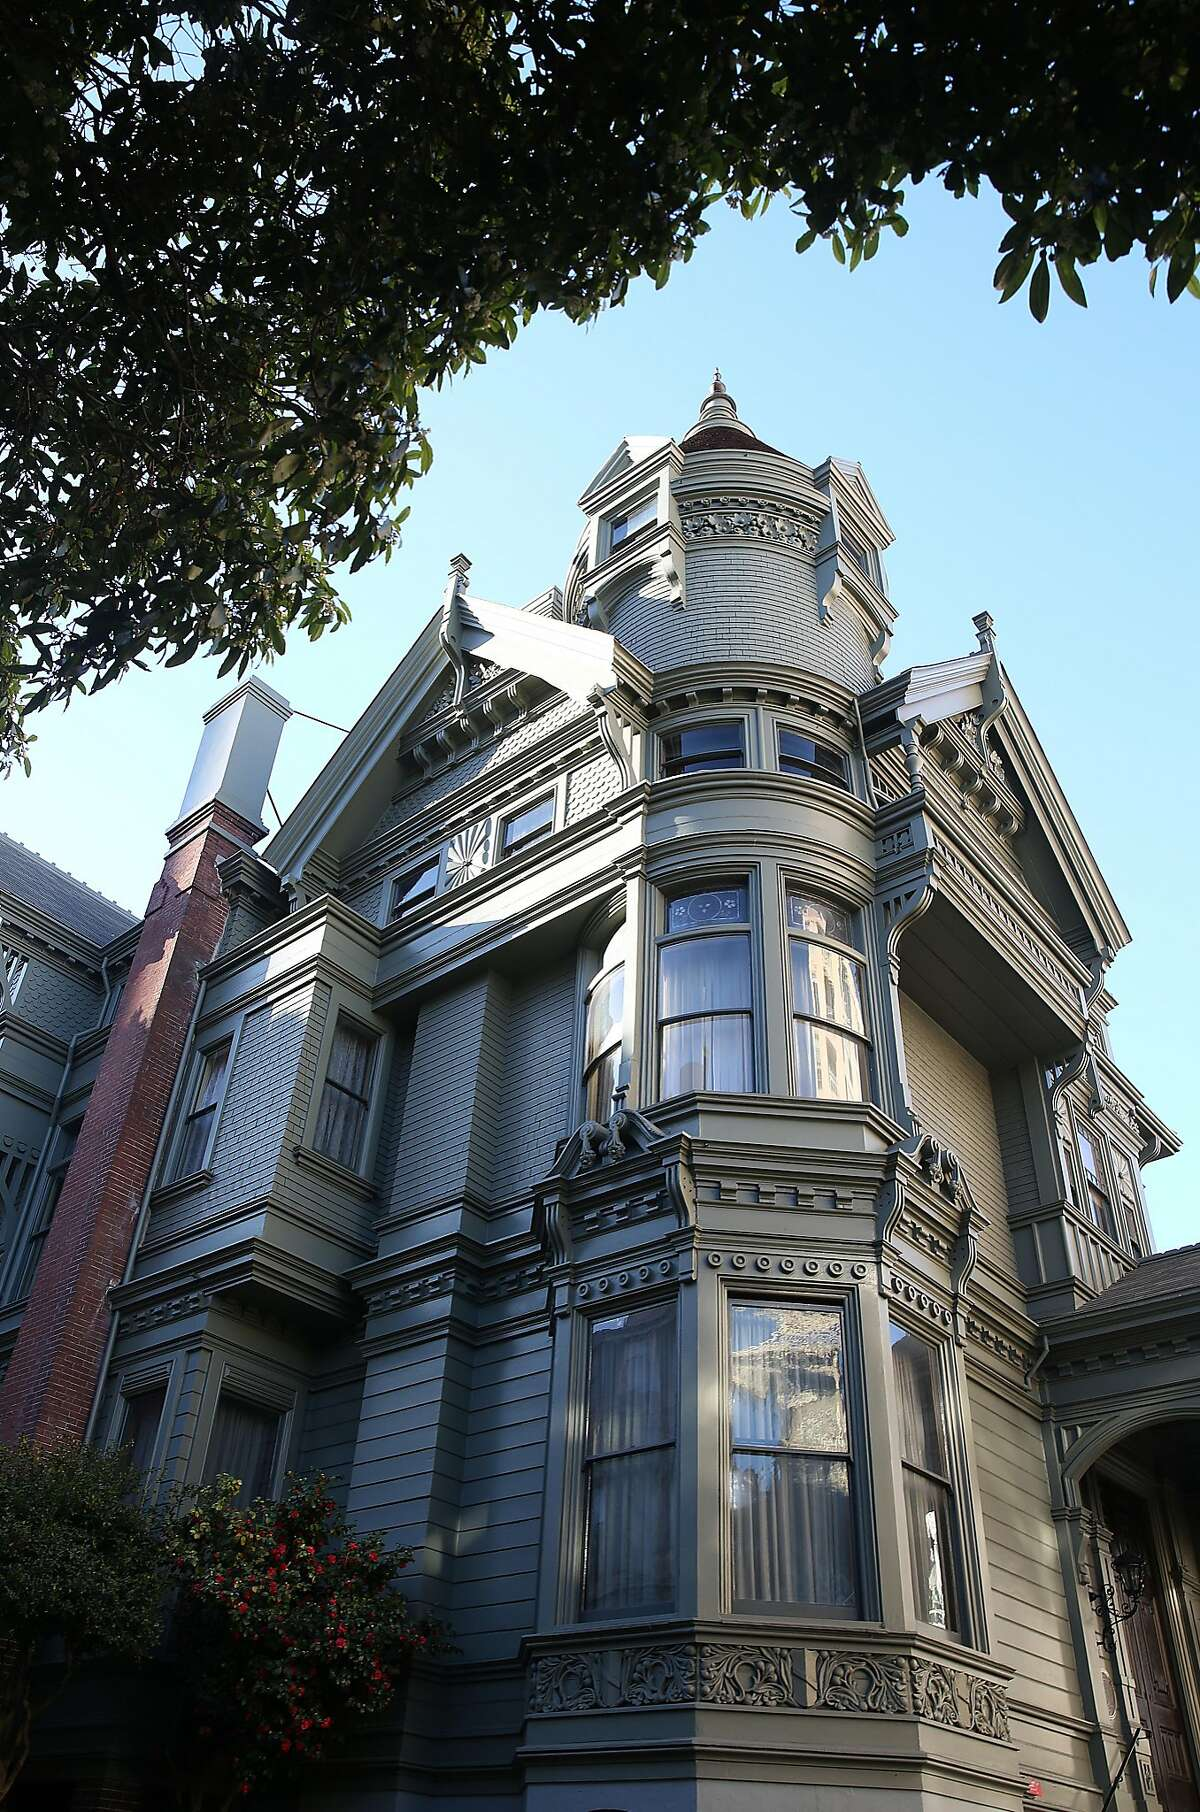 Haas-Lilenthal House, which has been restored, has 24 rooms and a 67-foot-tall tower.